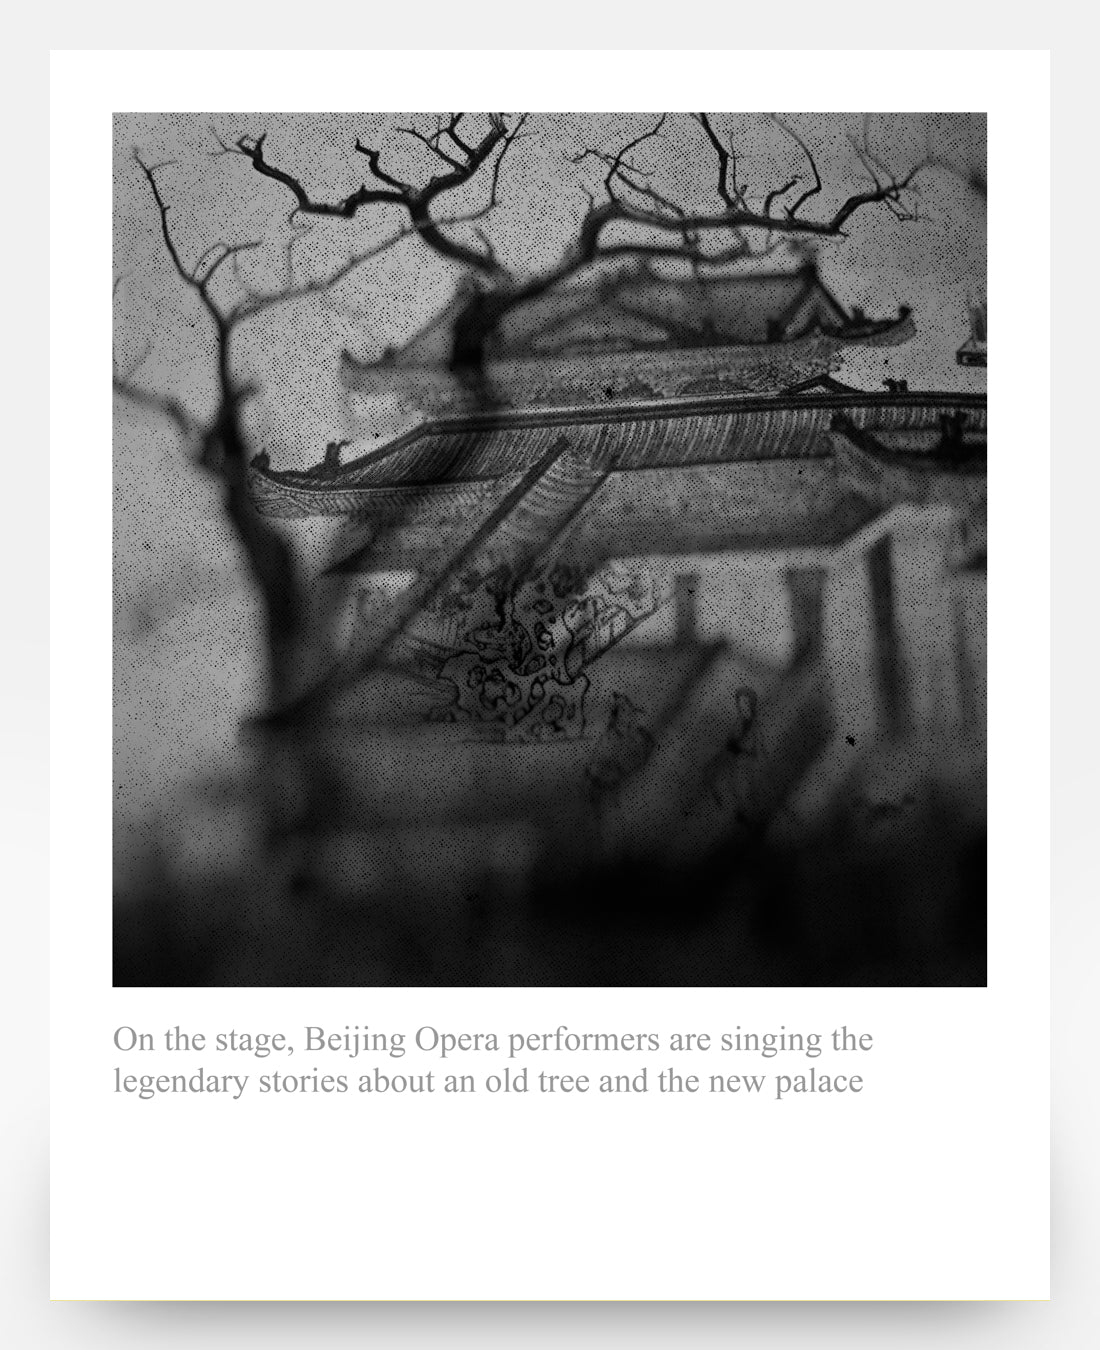 (stories about an old tree and the new palace)